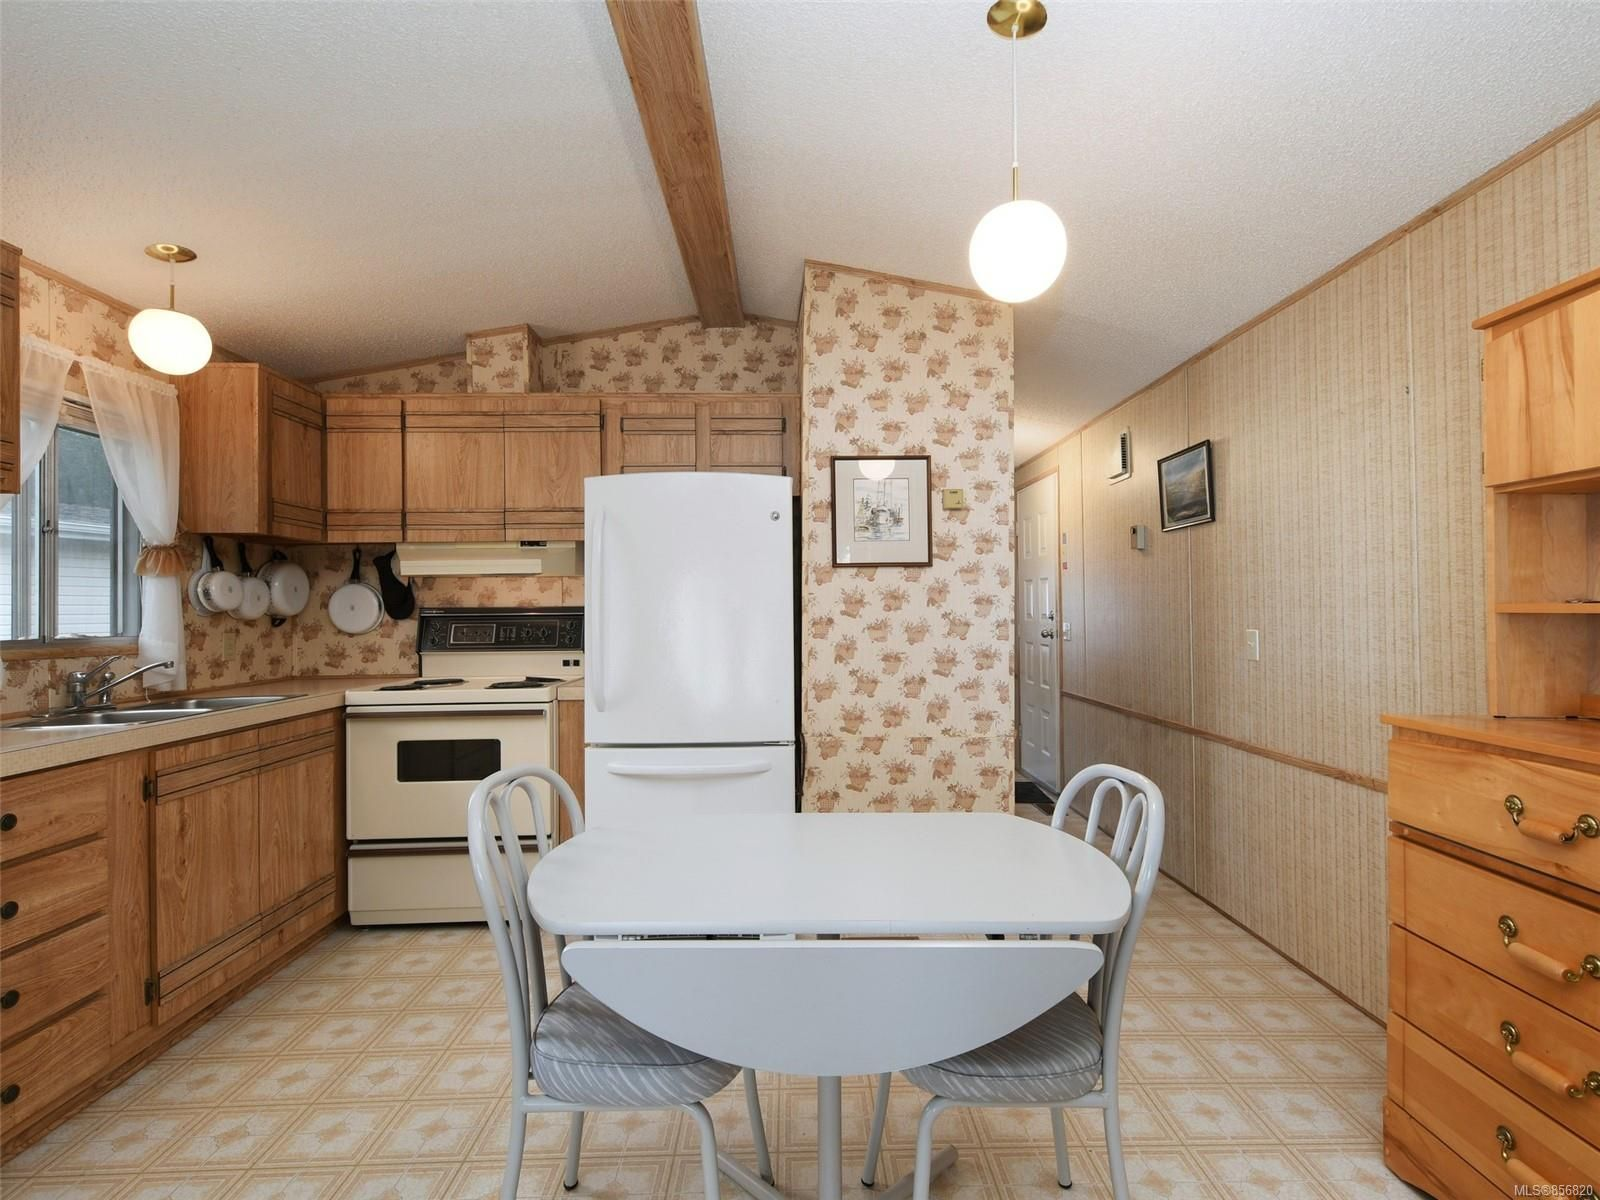 Photo 7: Photos: 25 7871 West Coast Rd in : Sk Kemp Lake Manufactured Home for sale (Sooke)  : MLS®# 856820